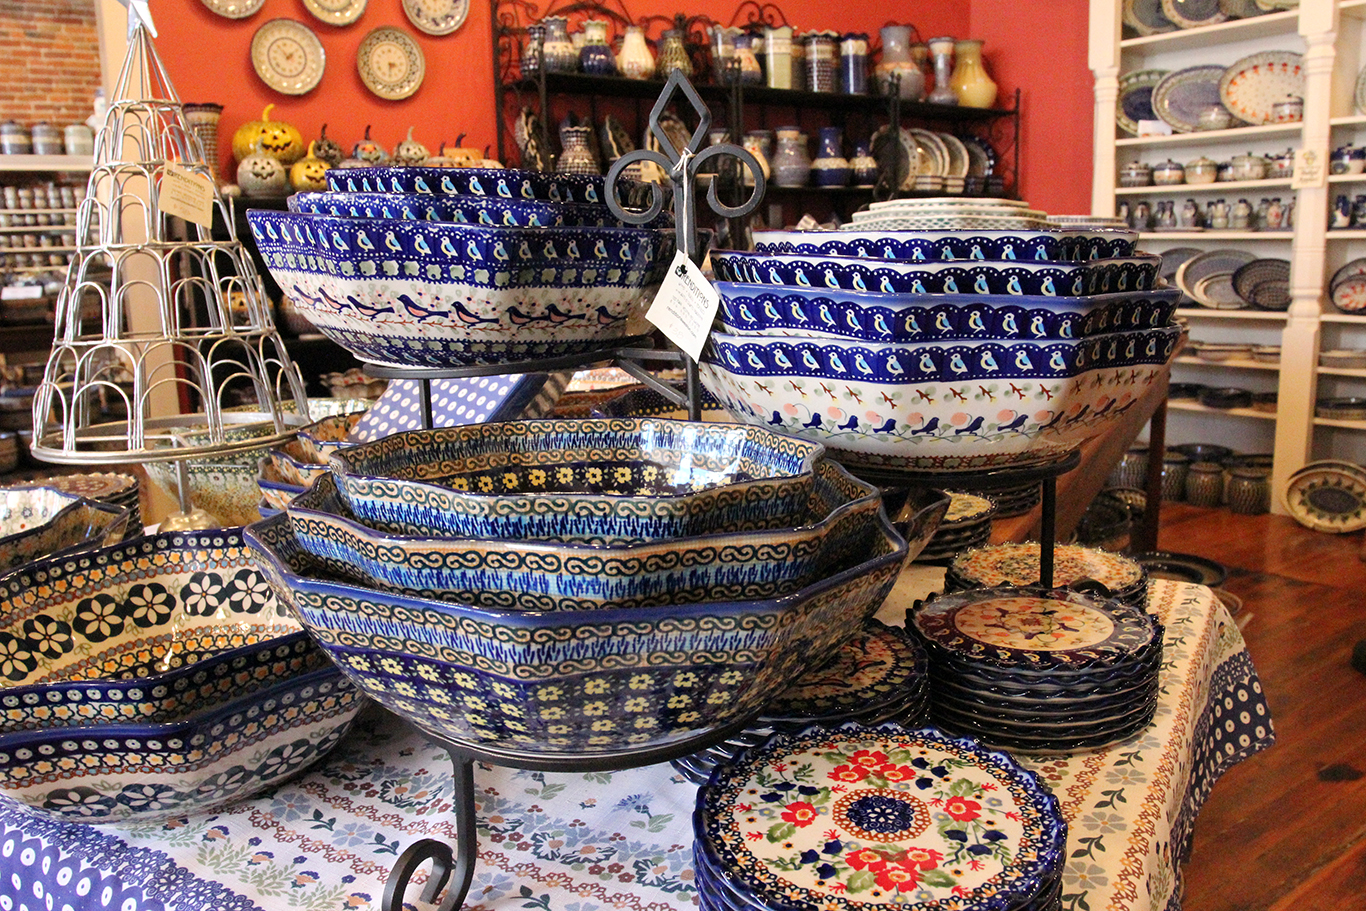 Polish Pottery Serving Bowls at Renditions in Weston, MO